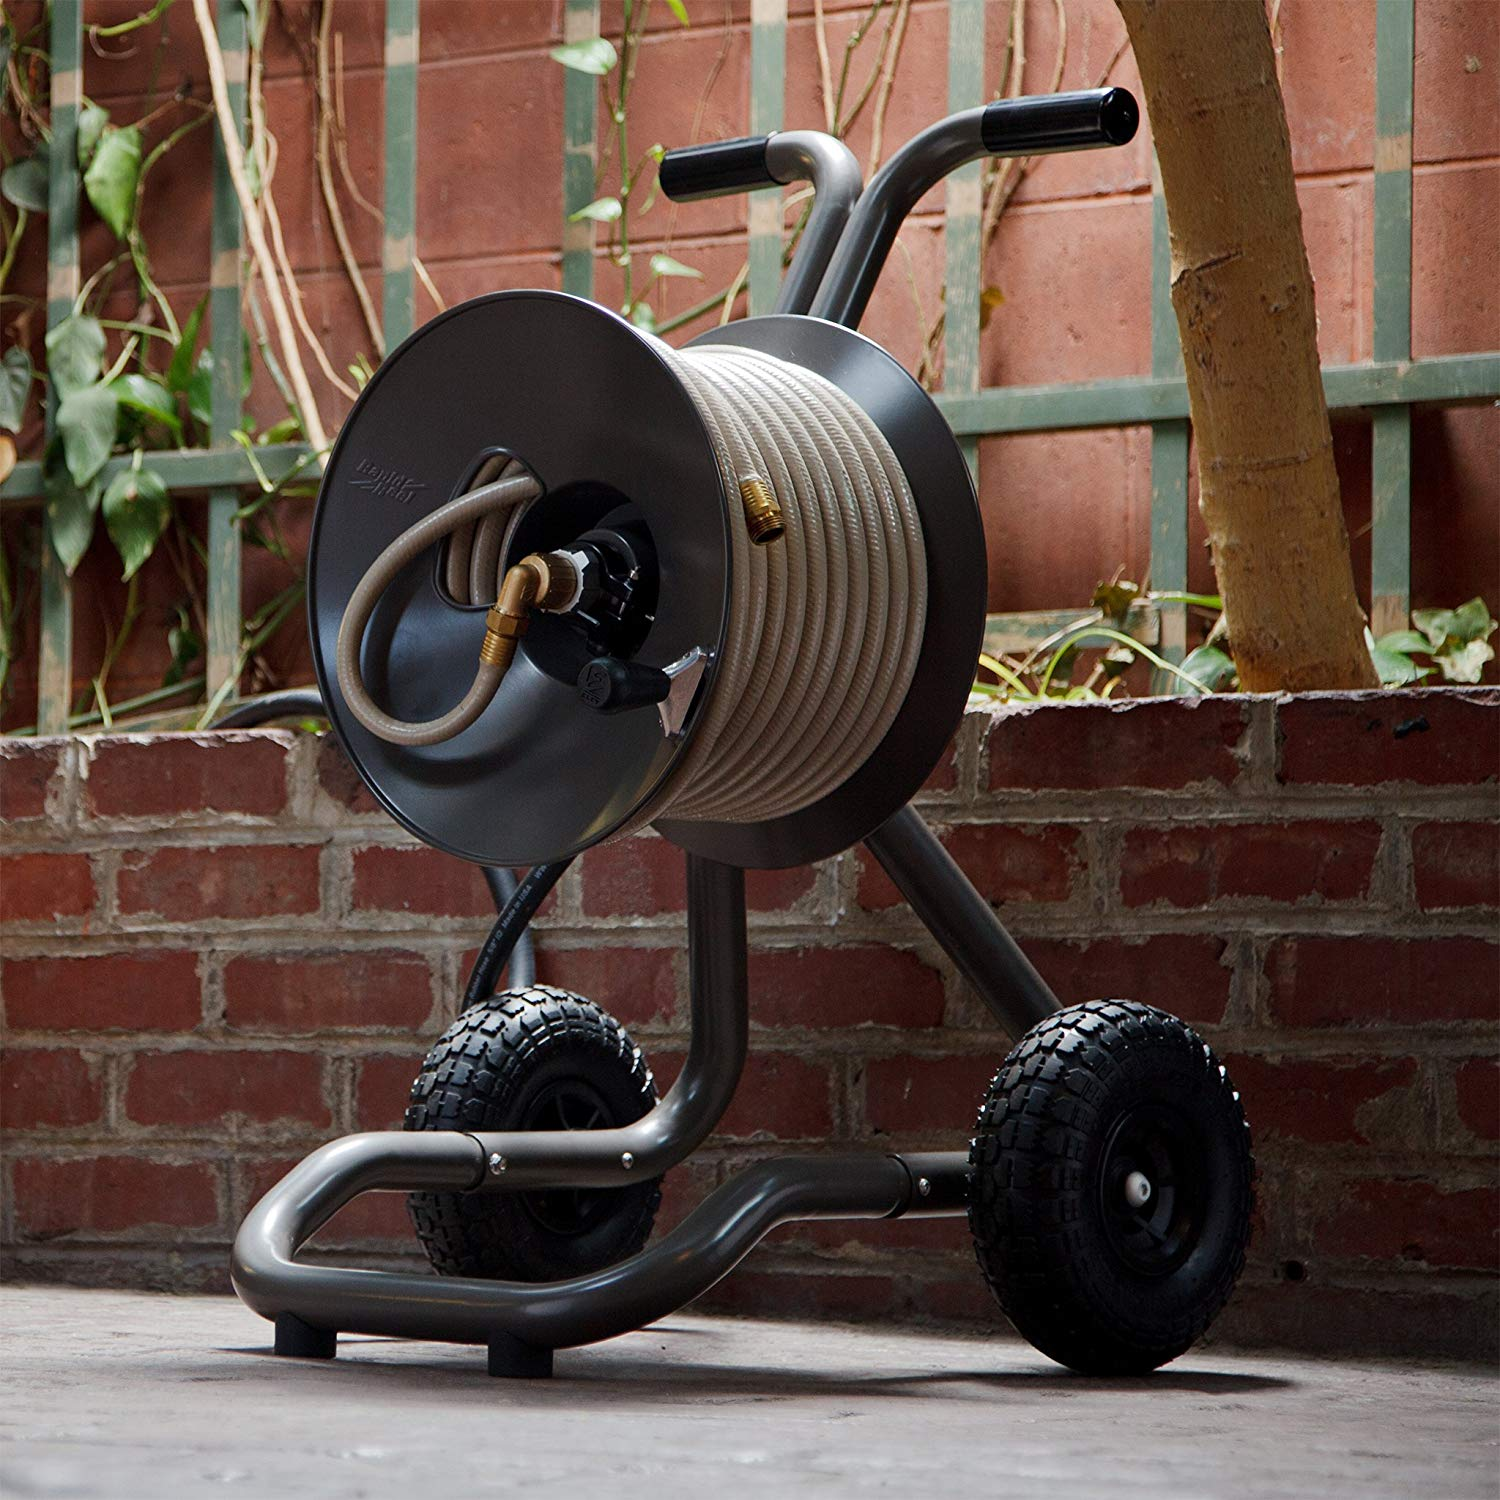 A hose reel is shown, it has two wheels and handles that are in the shape of a T. There is a wall of bricks in the background with a tree and some vines.